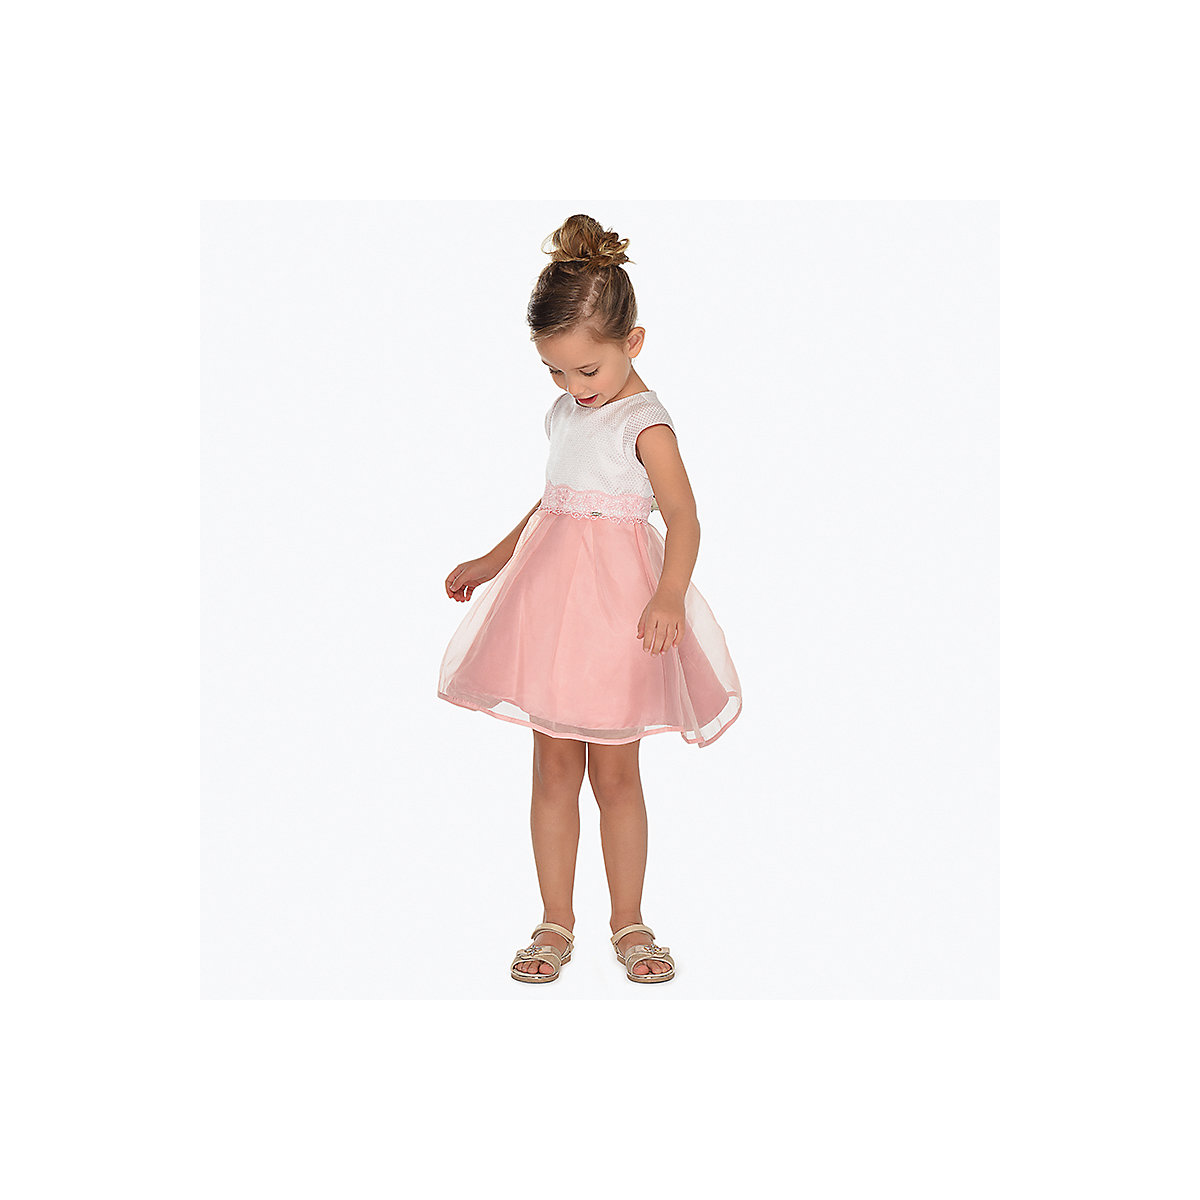 MAYORAL Dresses 10685167 Girl Children fitted pleated skirt Pink Polyester Casual Solid Knee-Length Sleeveless Sleeve